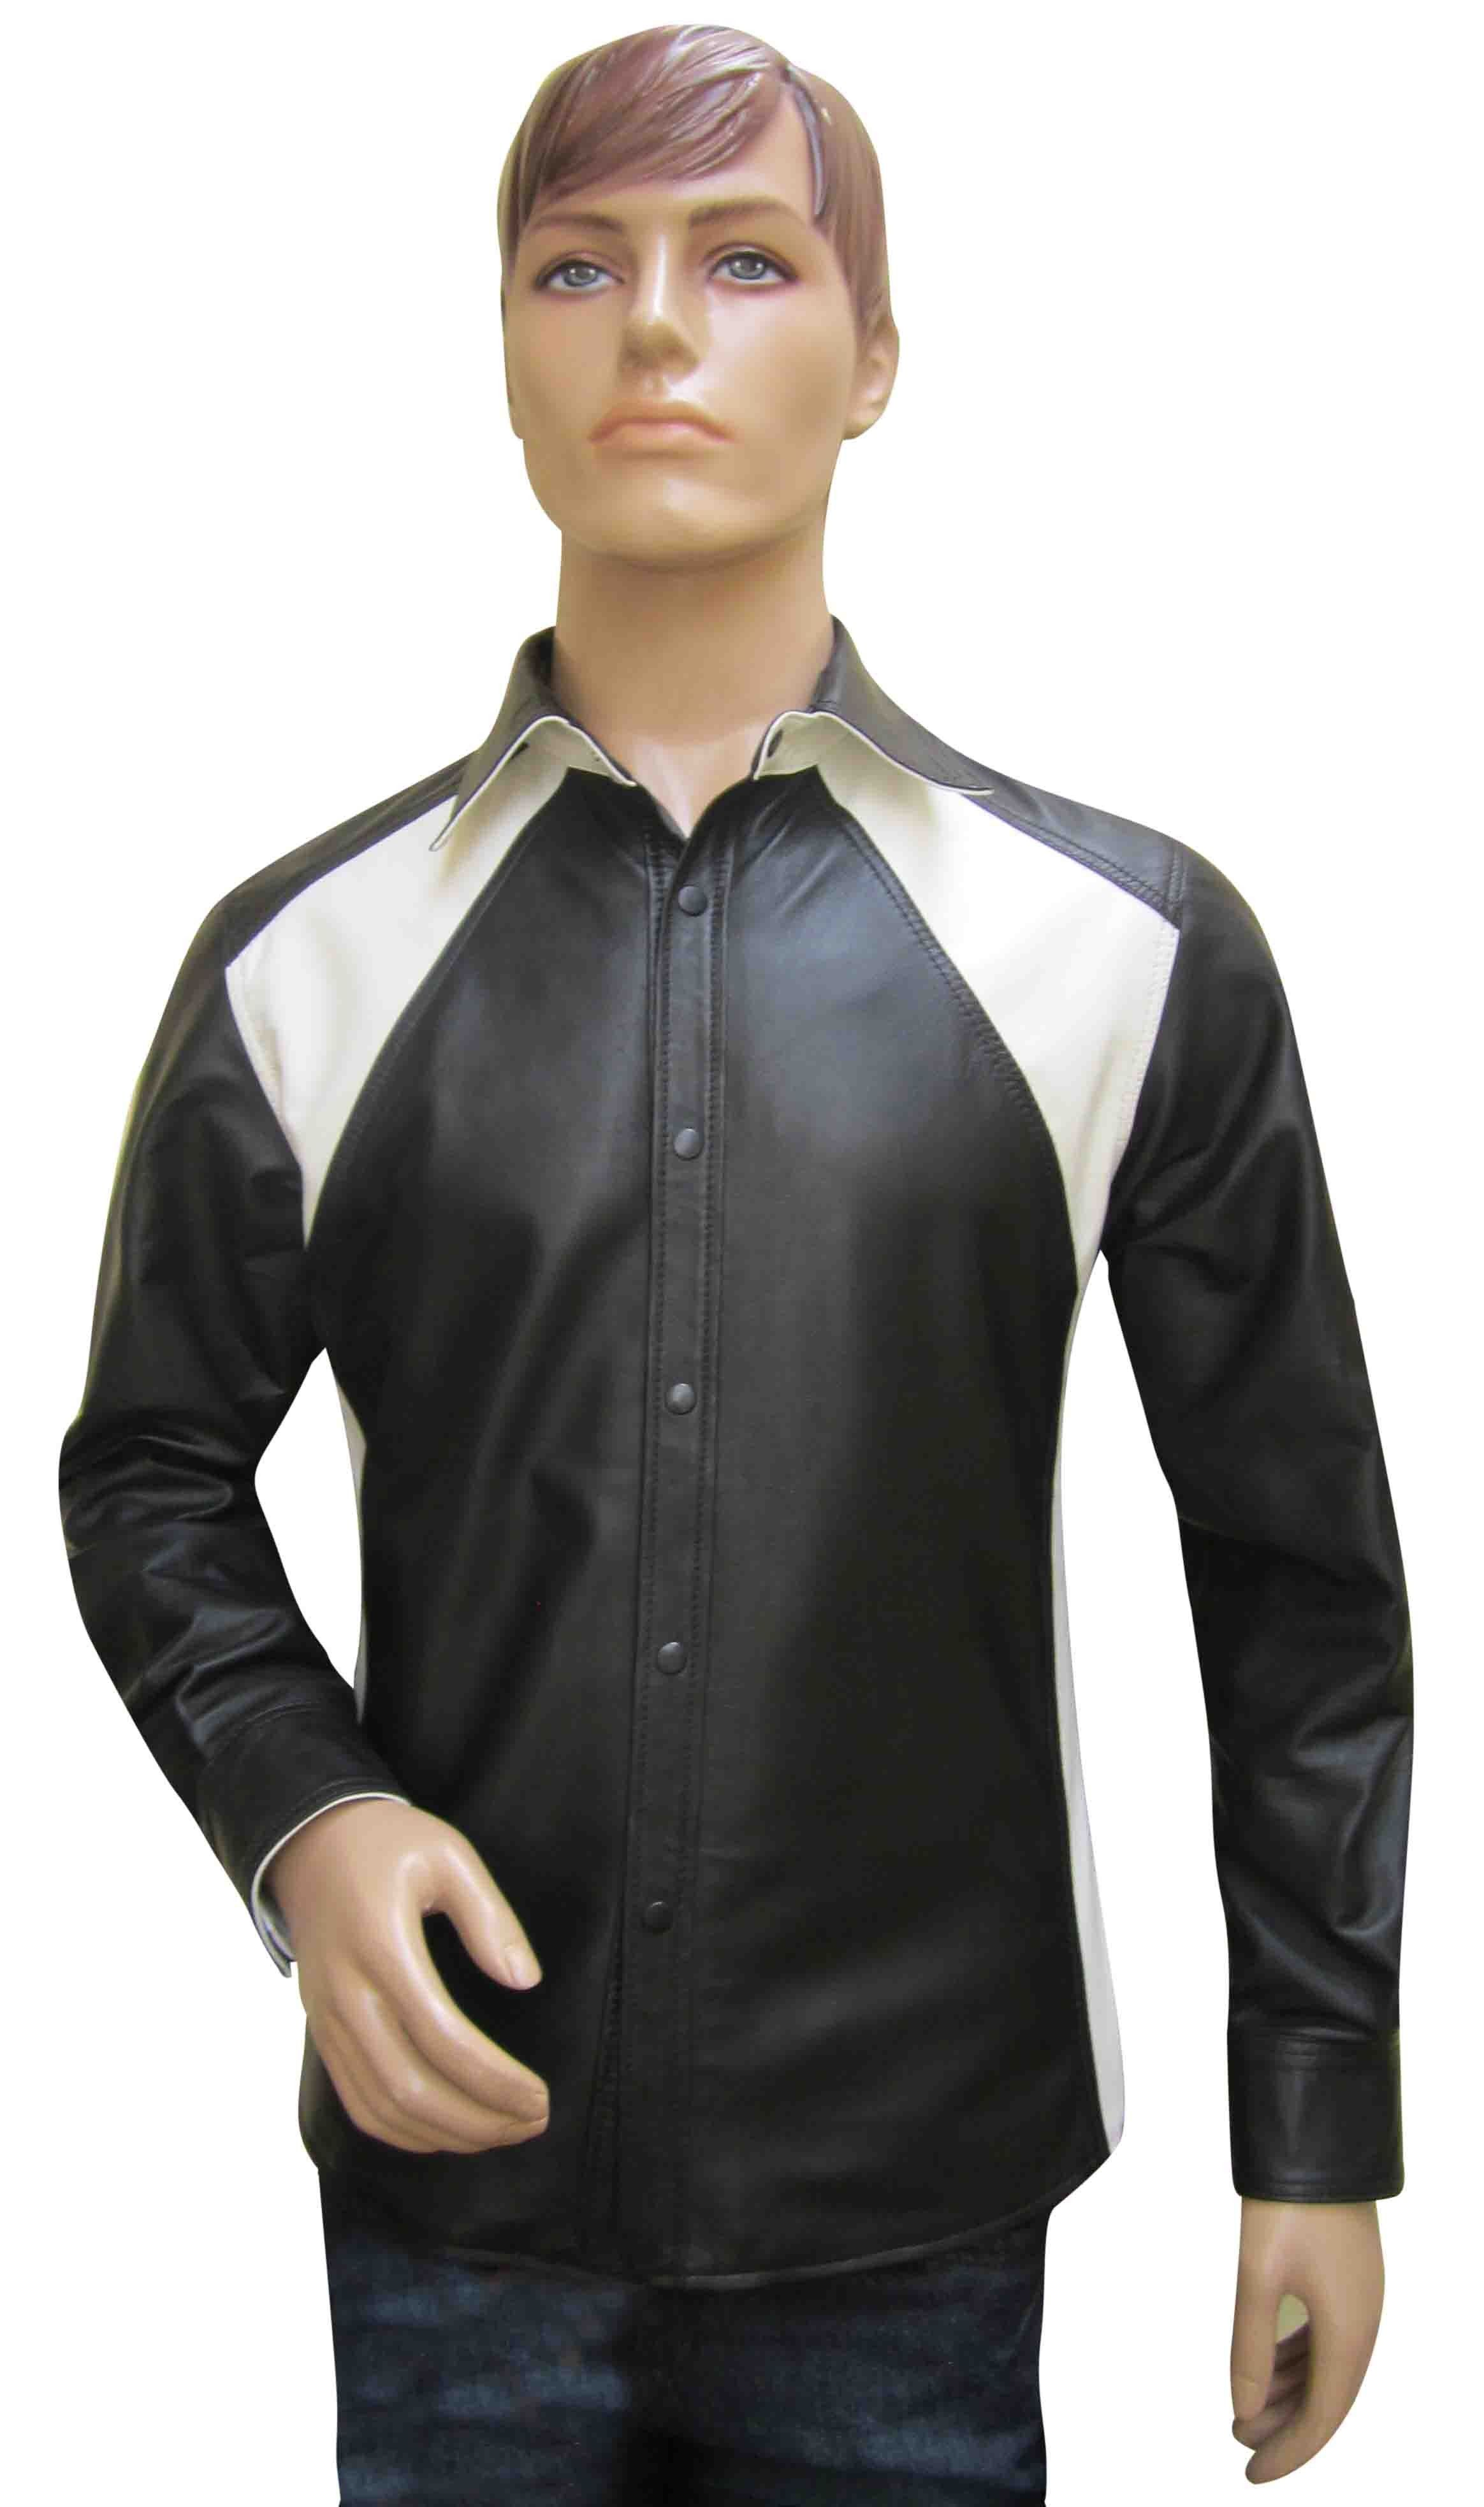 Leather Shirt With Two Colour Design - Sheep Nappa - Custom Made To Order Leather Shirt With Colour Design Real Sheeep Nappa.  We can also make the same garment to your own specific Leather color and colored piping size at extra cost., please choose Custom Made from selection list